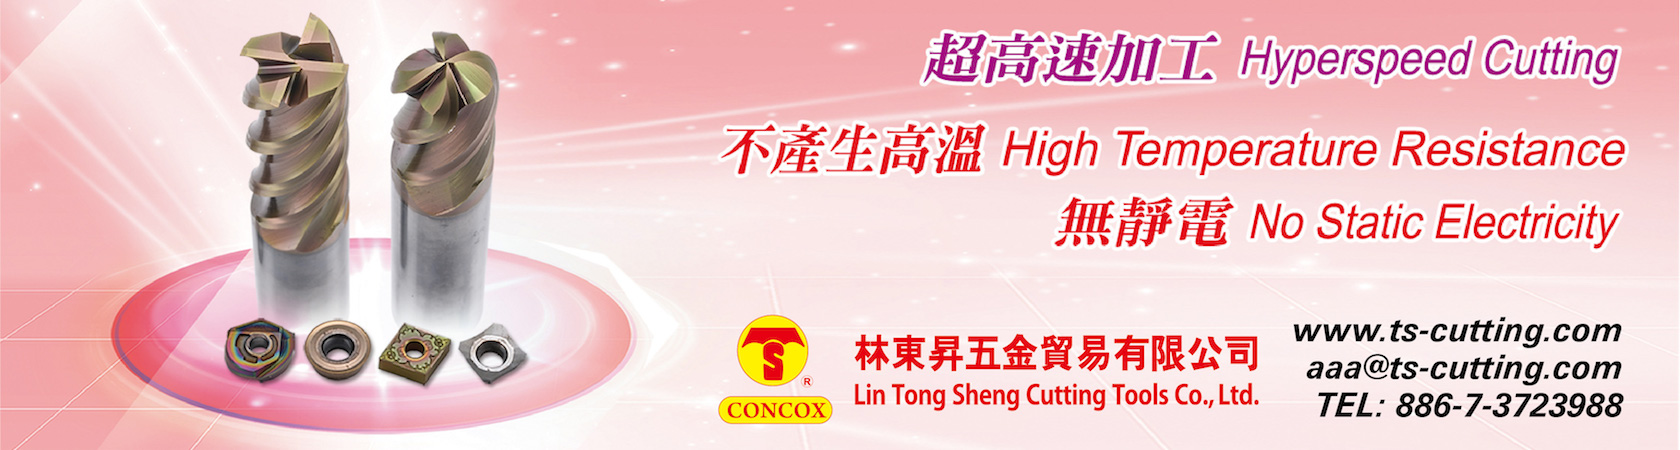 LIN TONG SHENG CUTTING TRADING CO., LTD.